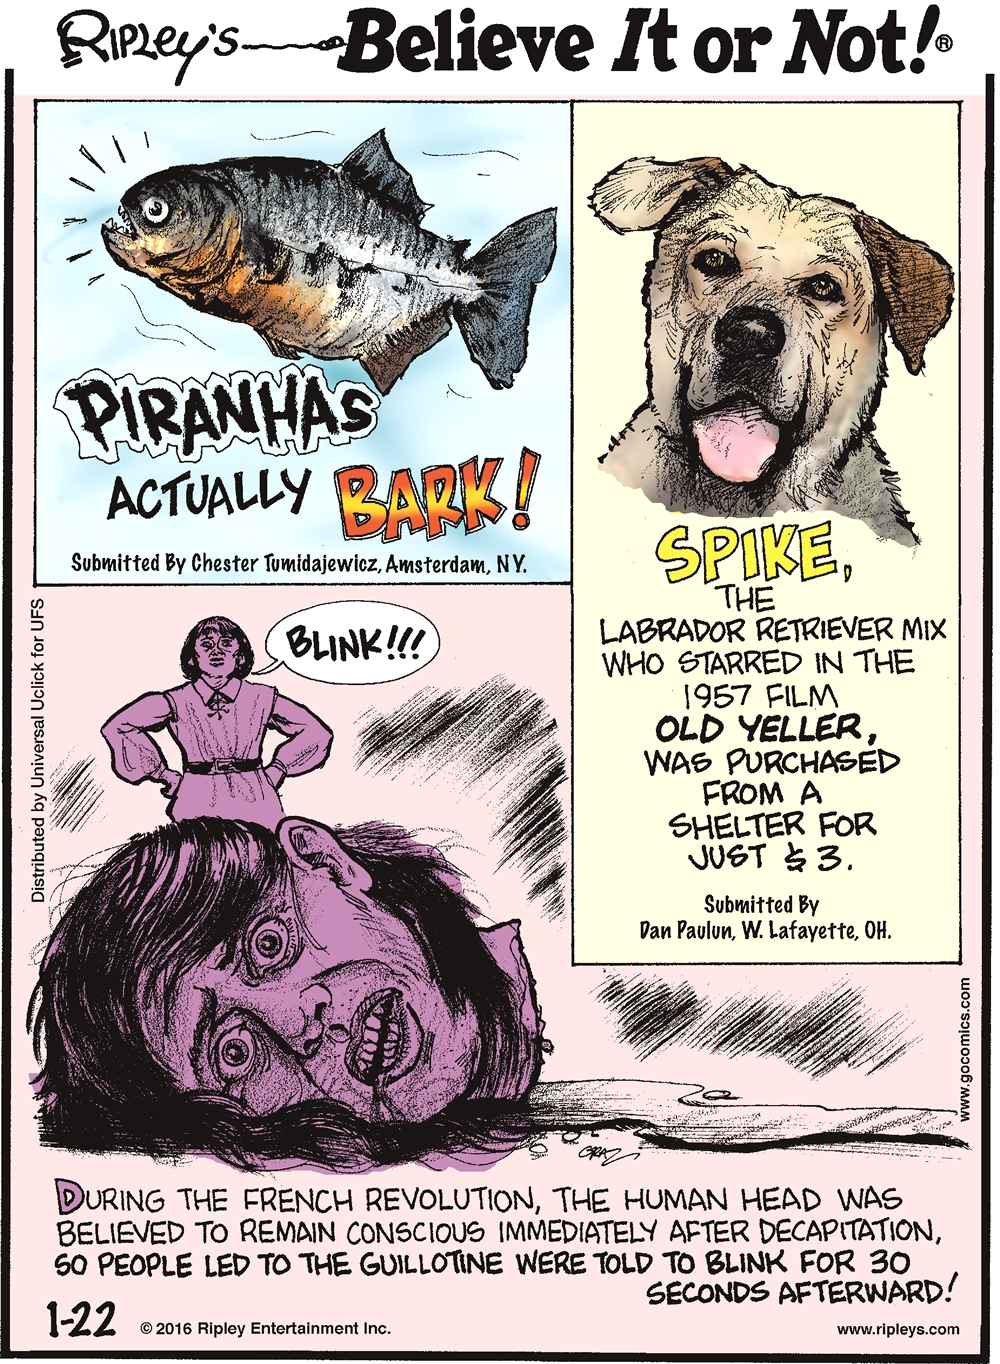 Piranhas actually bark! Submitted by Chester Tumidajewicz, Amsterdam, NY. -------------------- Spike, the Labrador retriever mix who starred in the 1957 film Old yeller, was purchased from a shelter for just $3. Submitted by Dan Paulum, W. Lafayette, OH. -------------------- During the French Revolution, the human head was believed to remain conscious immediately after decapitation, so people led to the guillotine were told to blink for 30 seconds afterward!